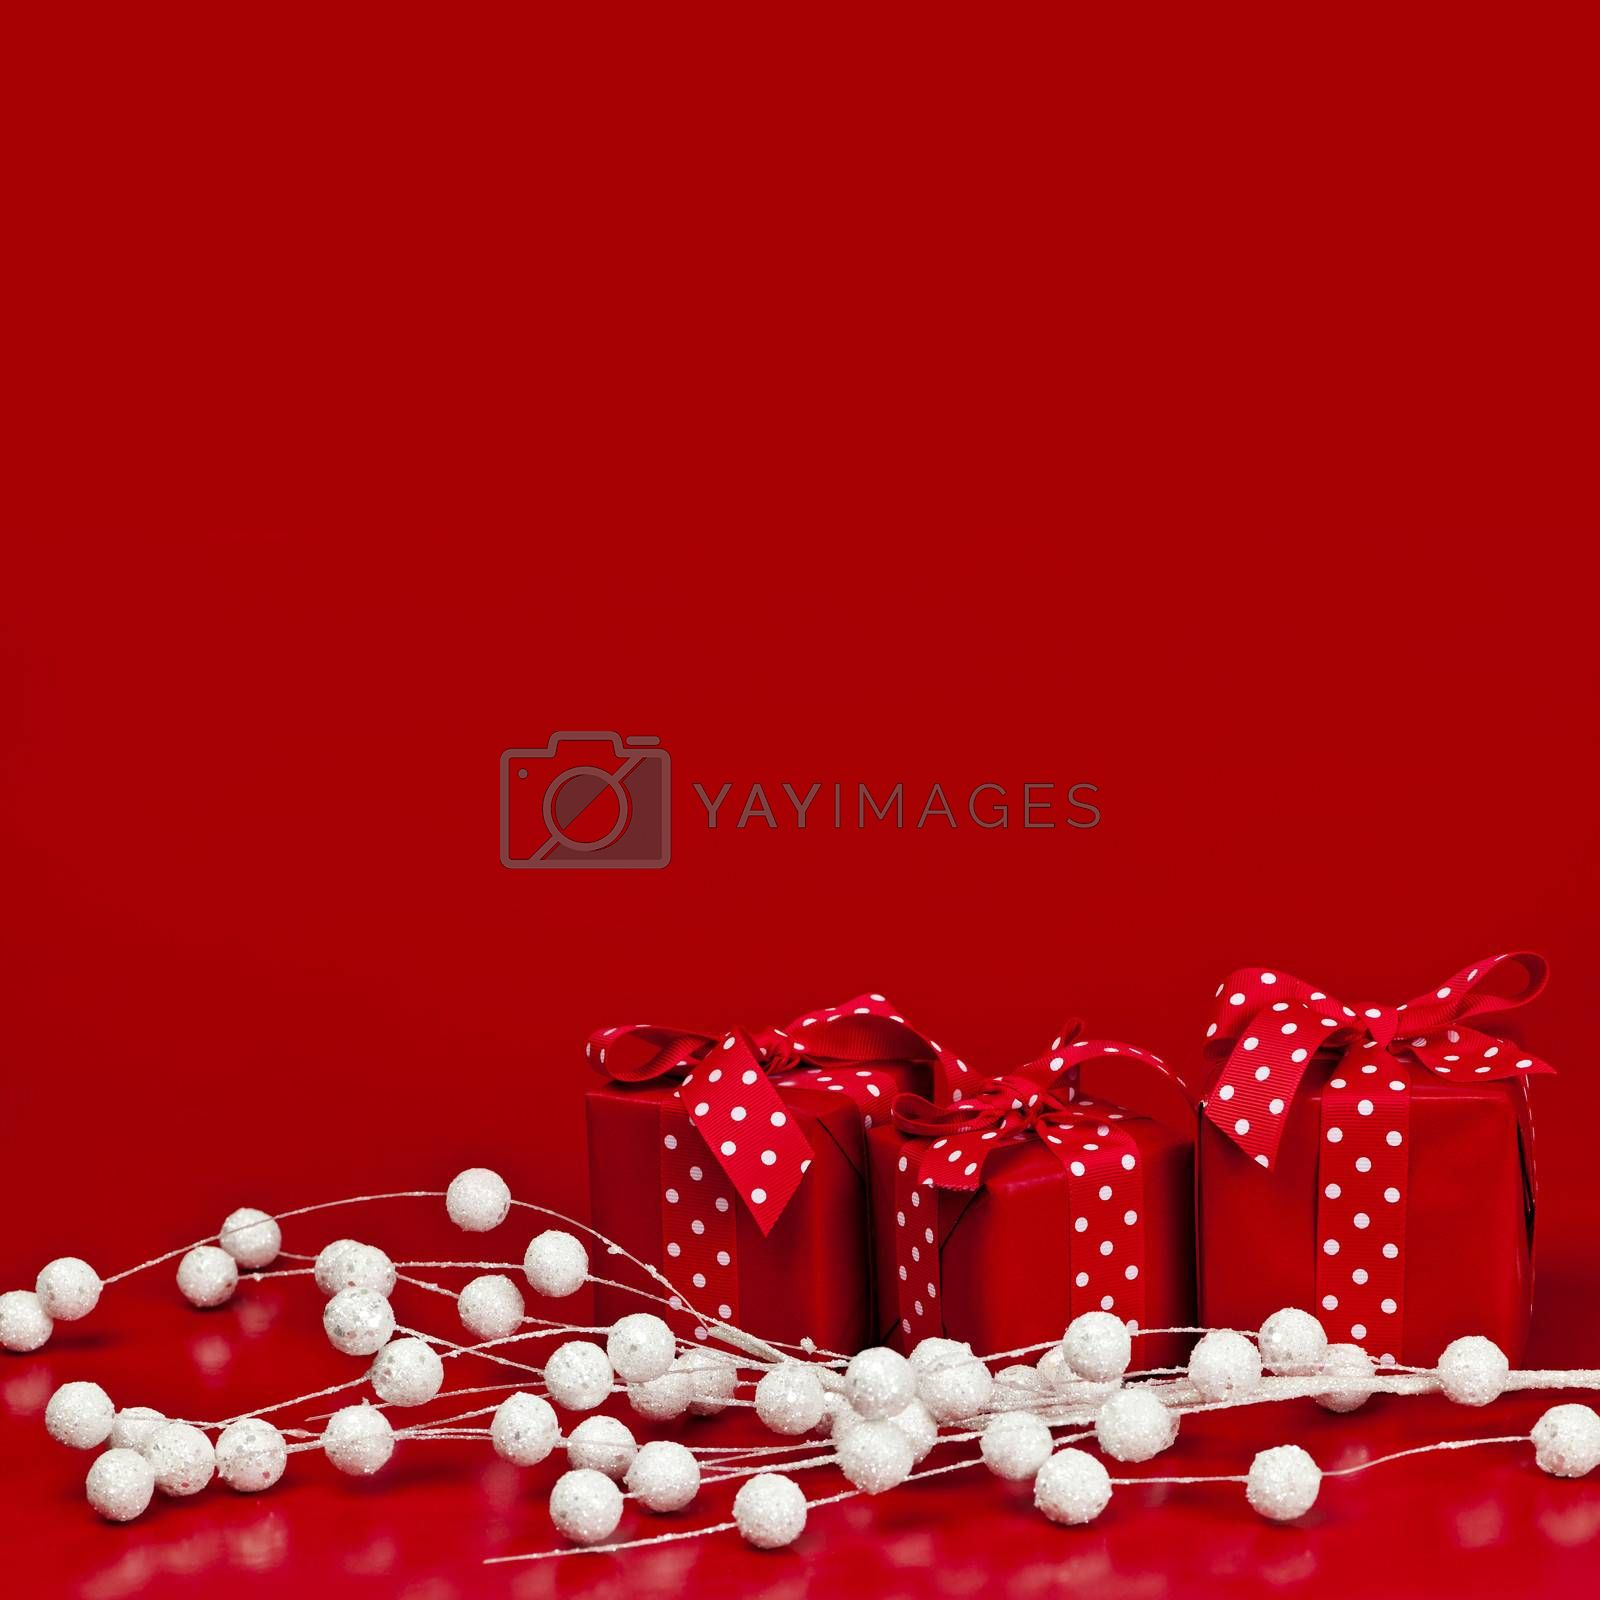 Red Christmas background with wrapped presents and decorations